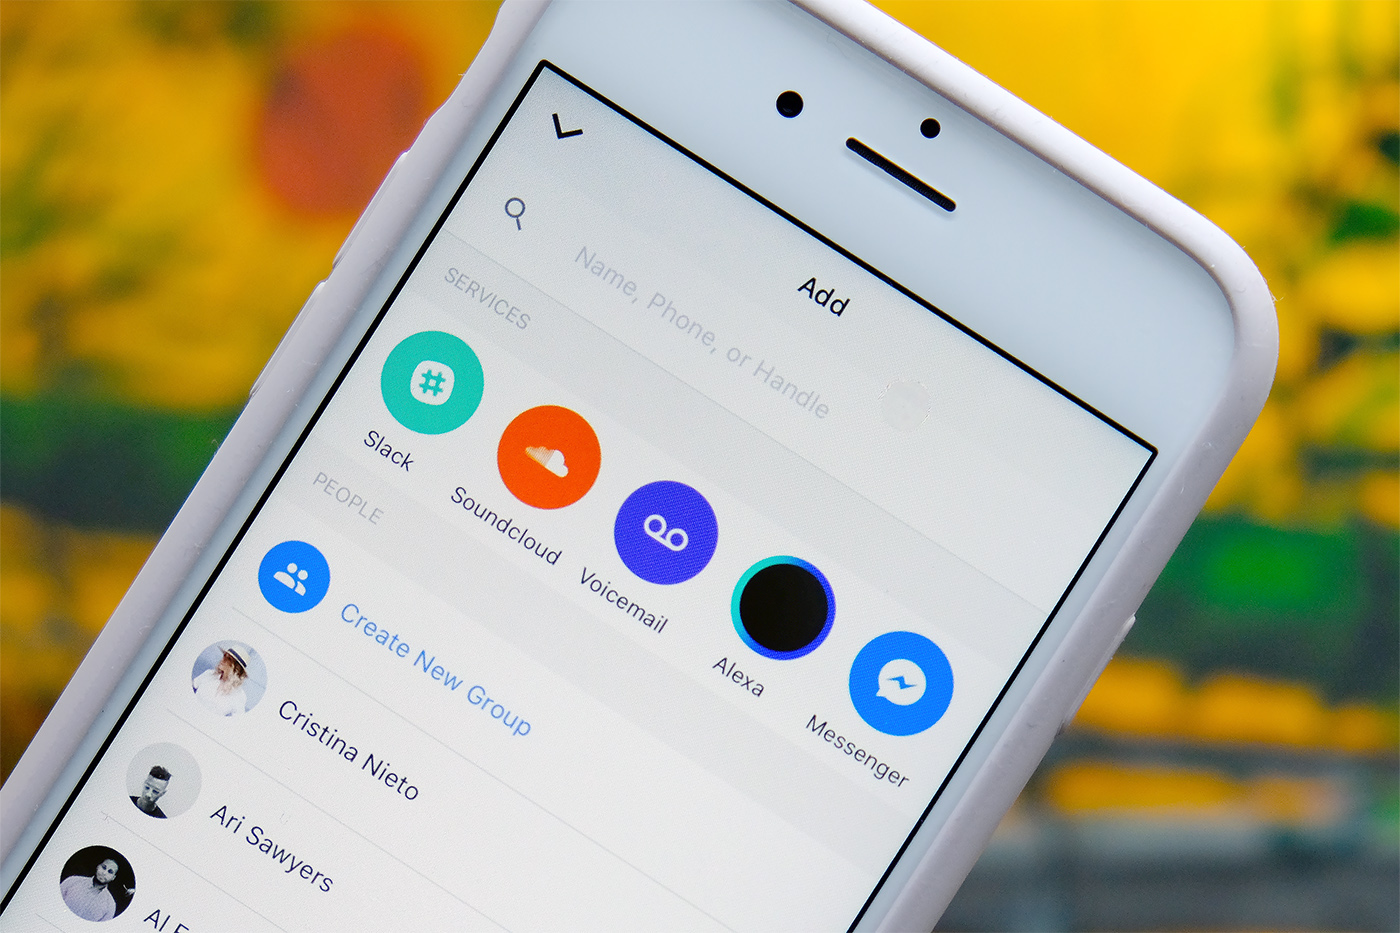 Roger app puts Amazon Alexa in your phone for free